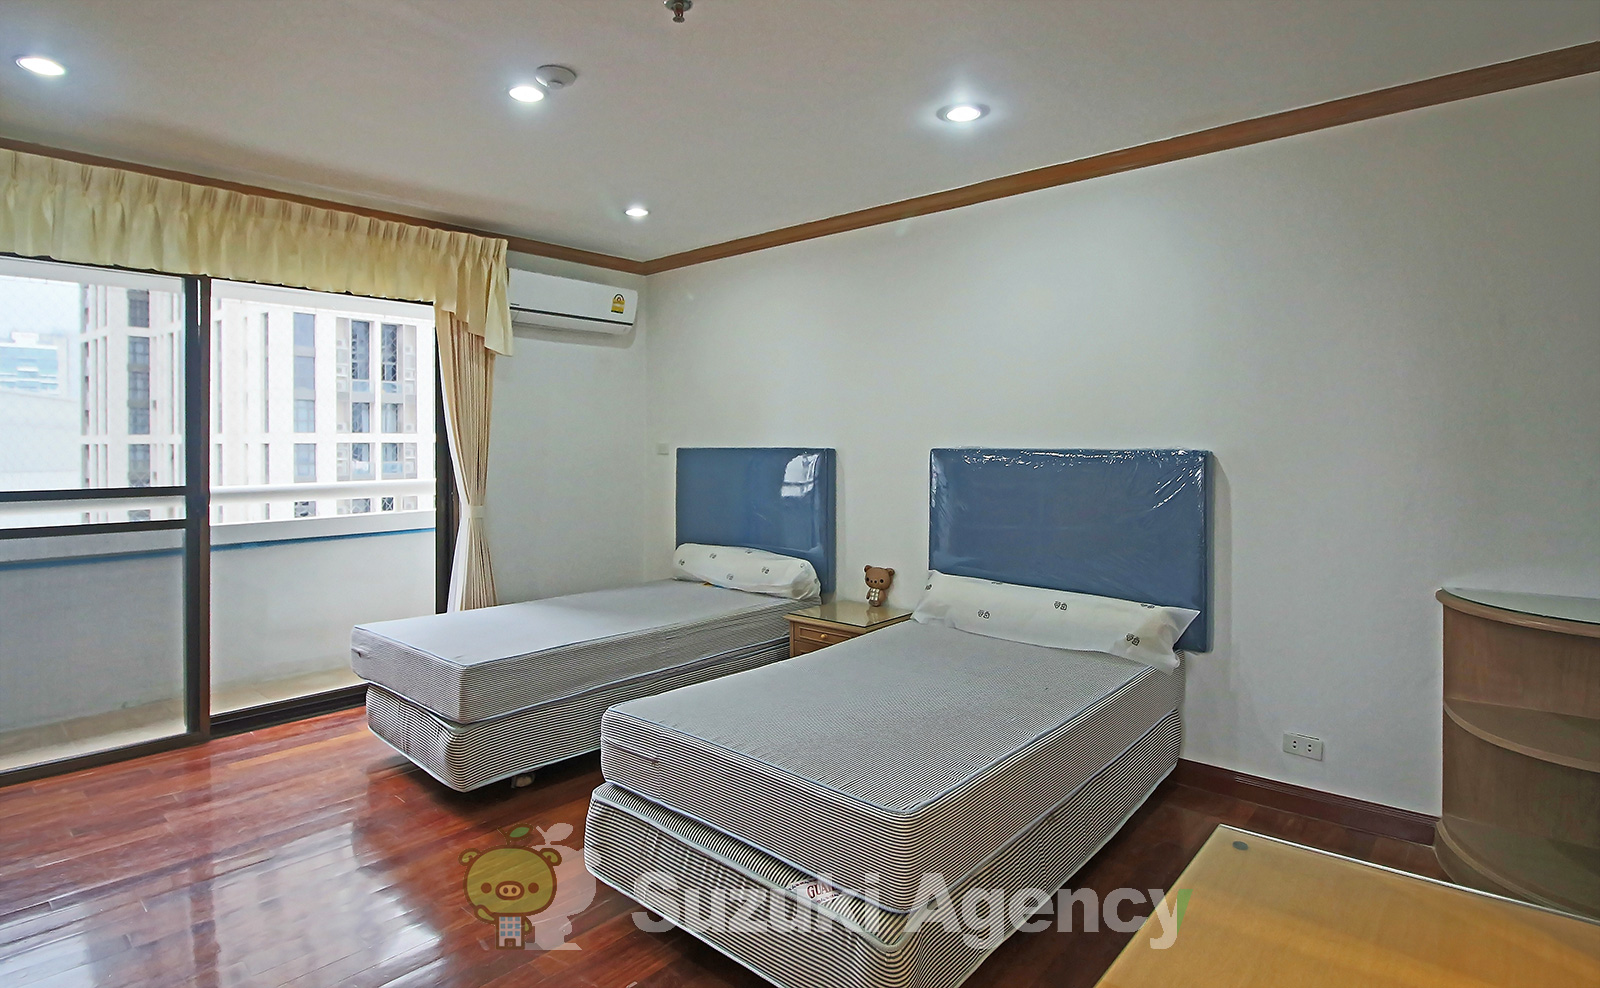 Baan Suanpetch:2Bed Room Photos No.9